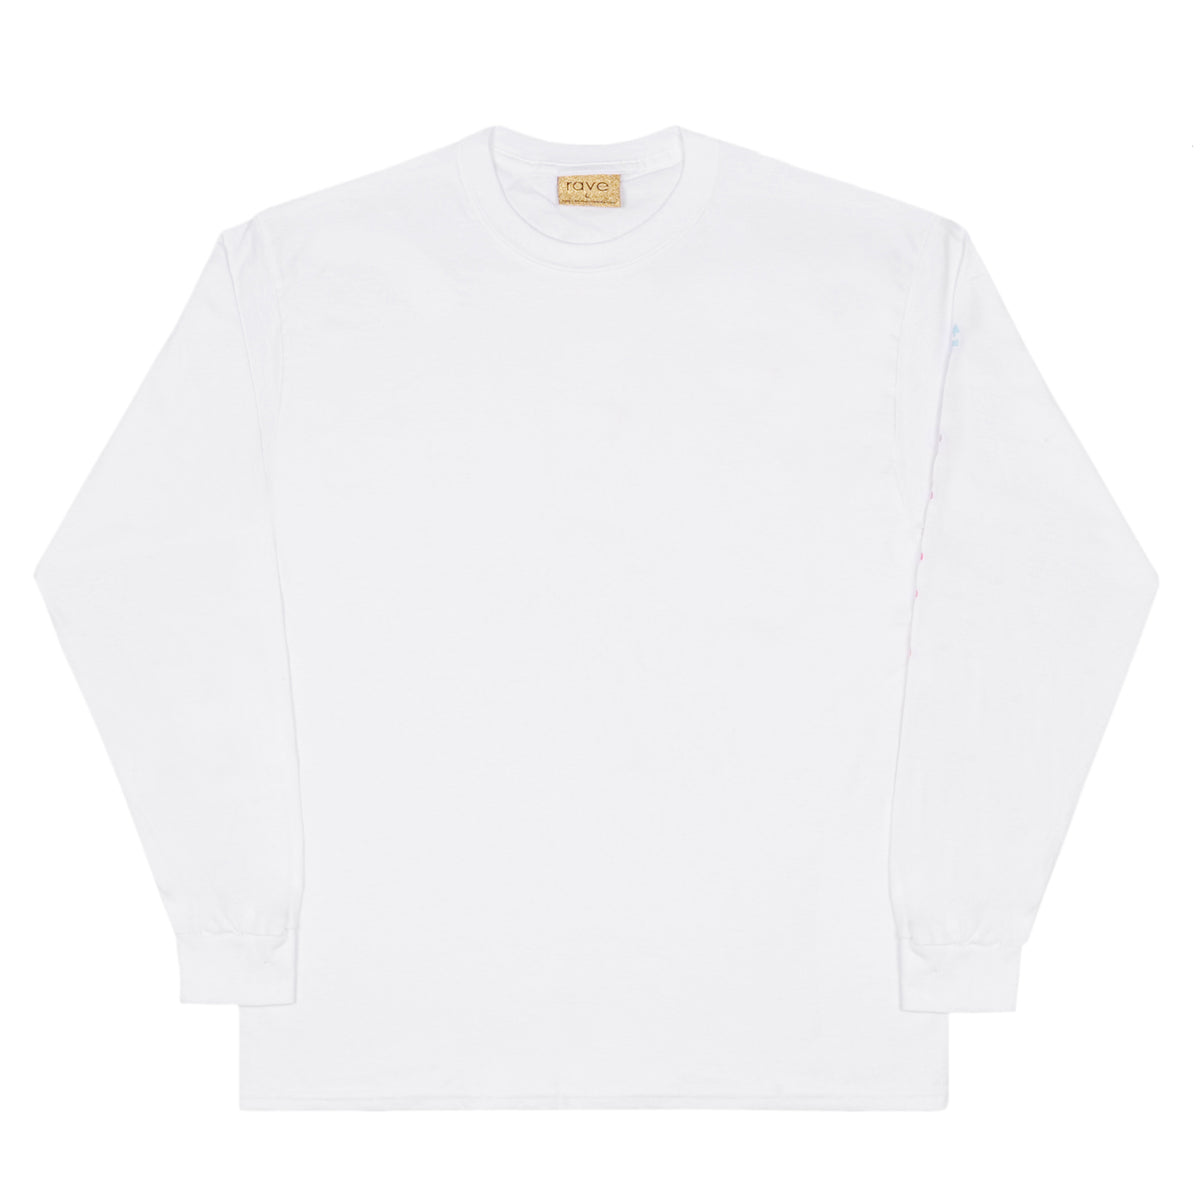 BORA BORA white long sleeves tee - RAVE skateboards